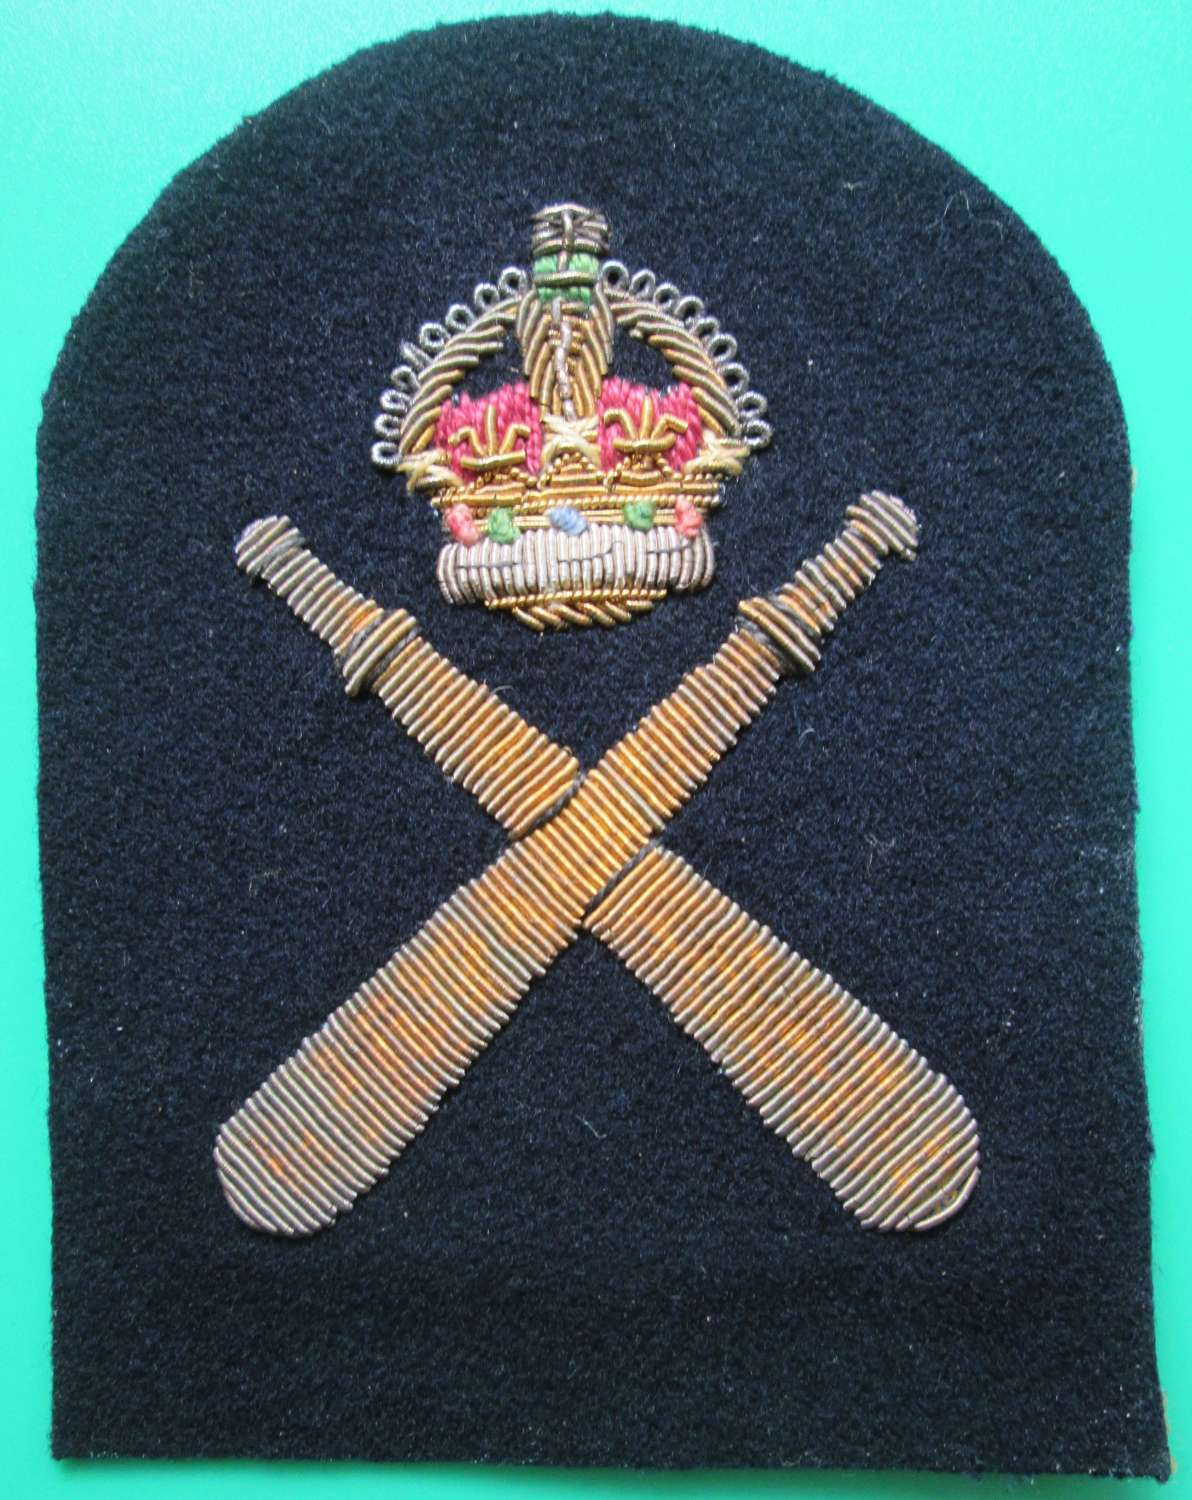 A ROYAL NAVAL PHYSICAL TRAINING LEAD RATING BADGE